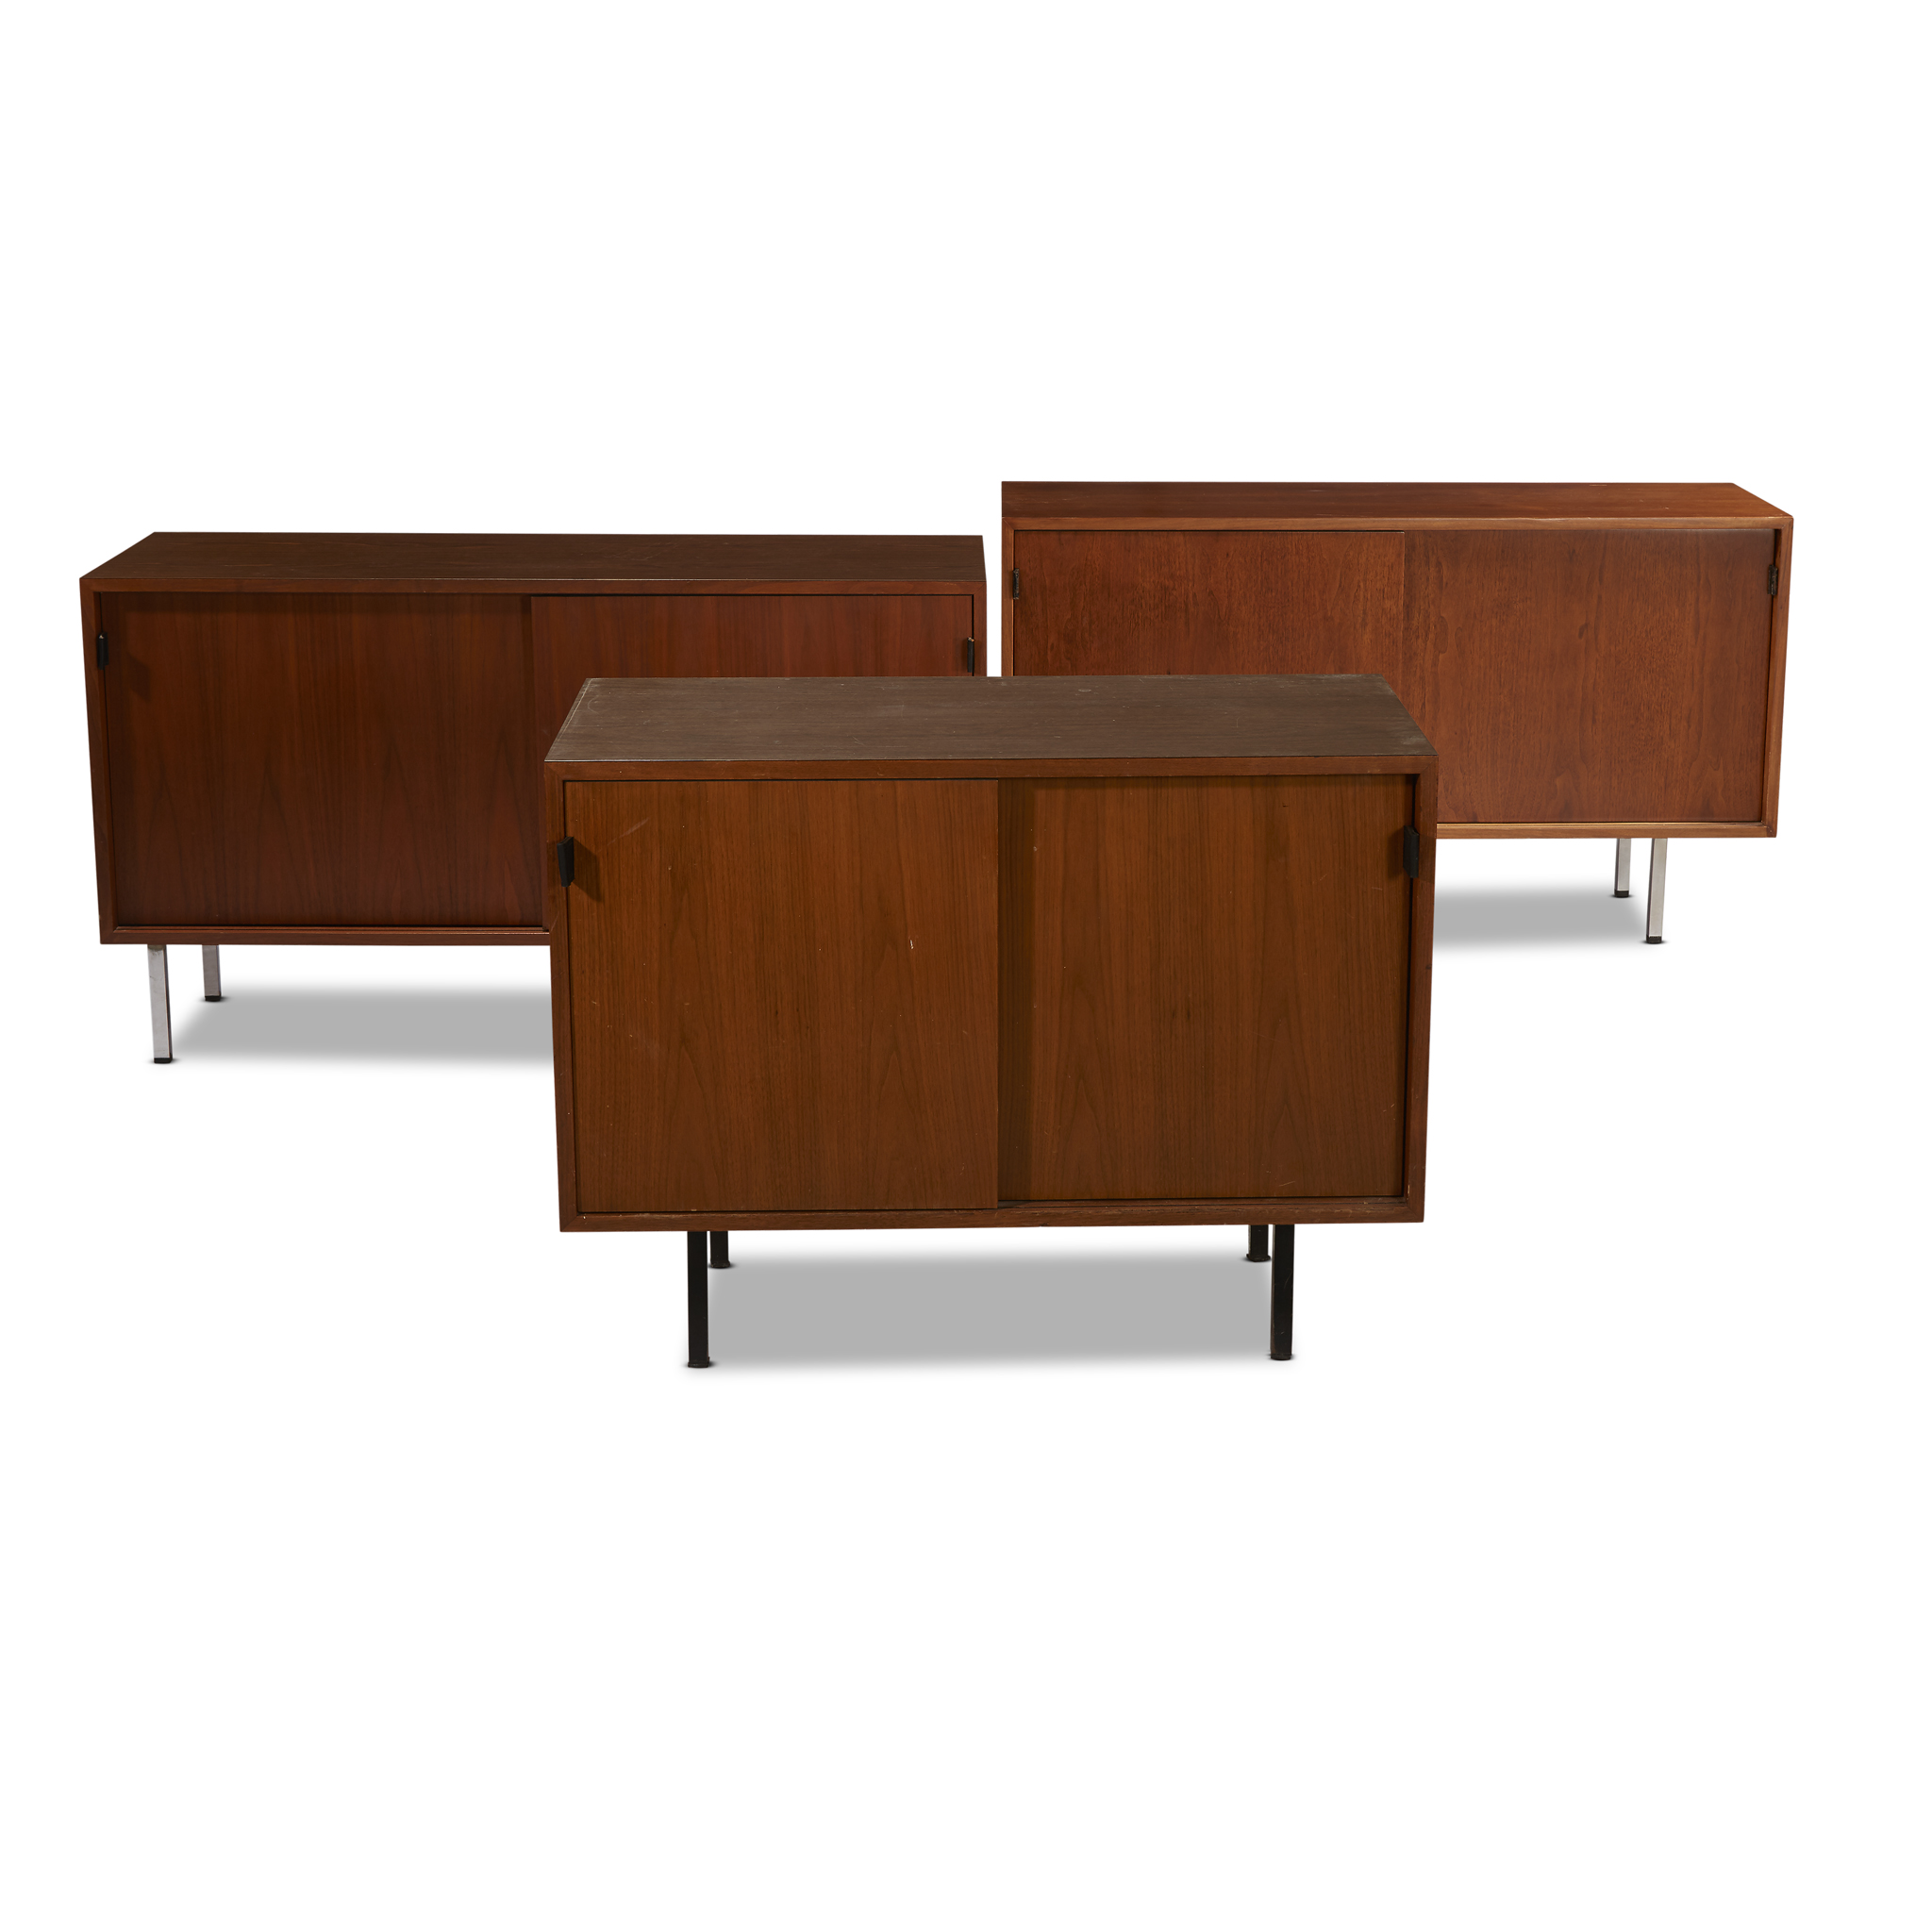 Iconic Modern Furniture Freemans To Auction Off Midcentury Modern Furniture For Every